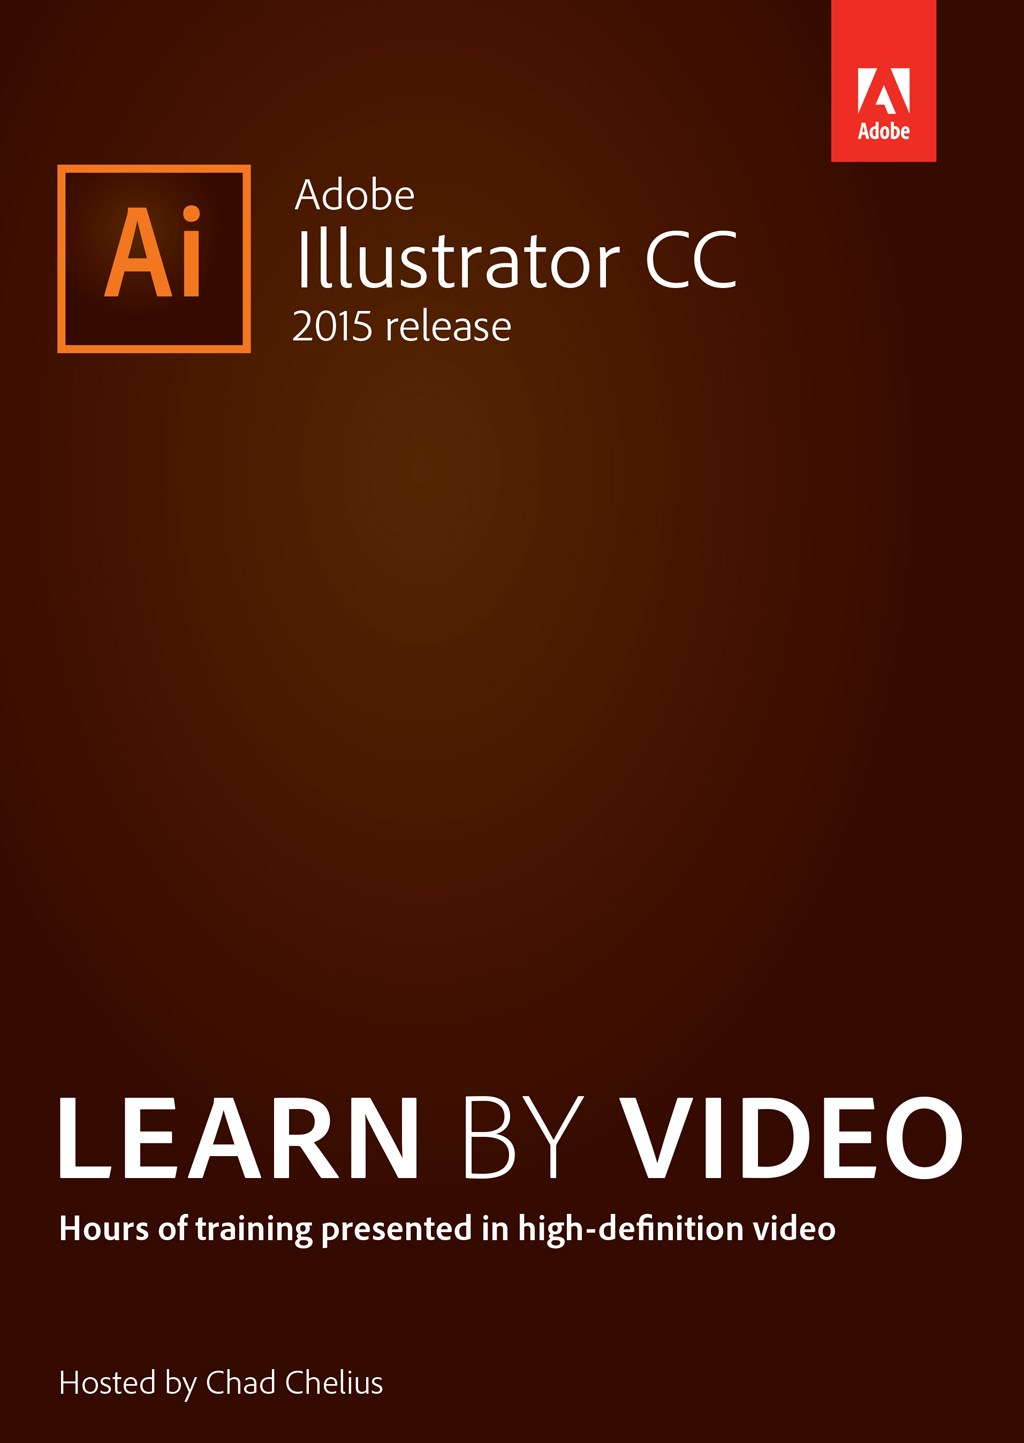 Adobe Illustrator CC Learn by Video (2015 release)